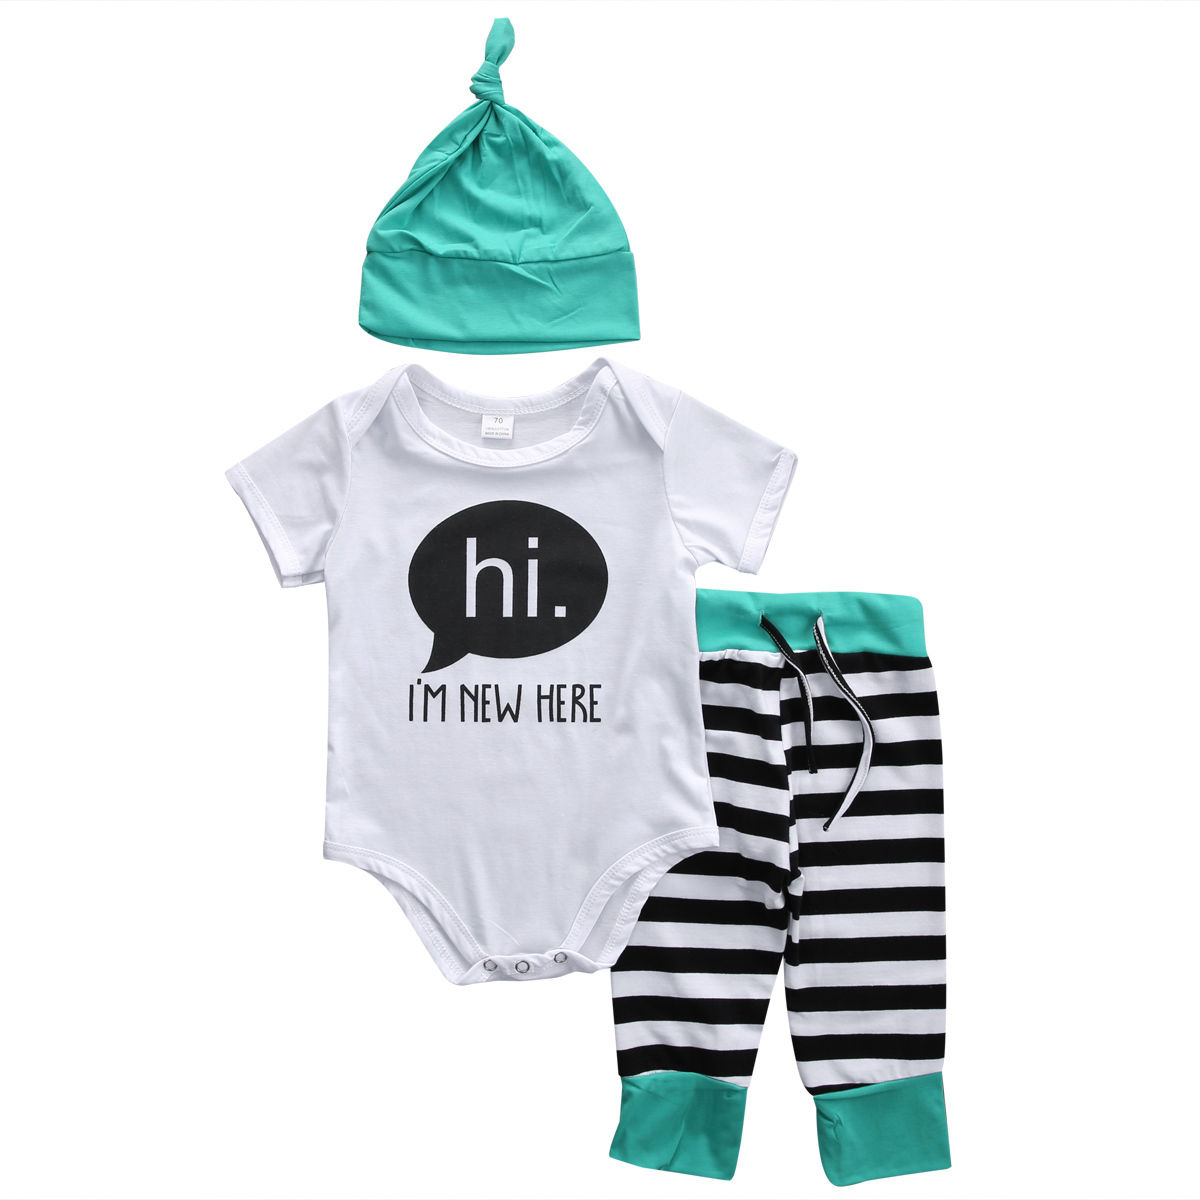 3PCS Casual Newborn Baby Boys Girls IM New Here Short Sleeve Bodysuit+Striped Pants+Hat Outfit Set Clothes